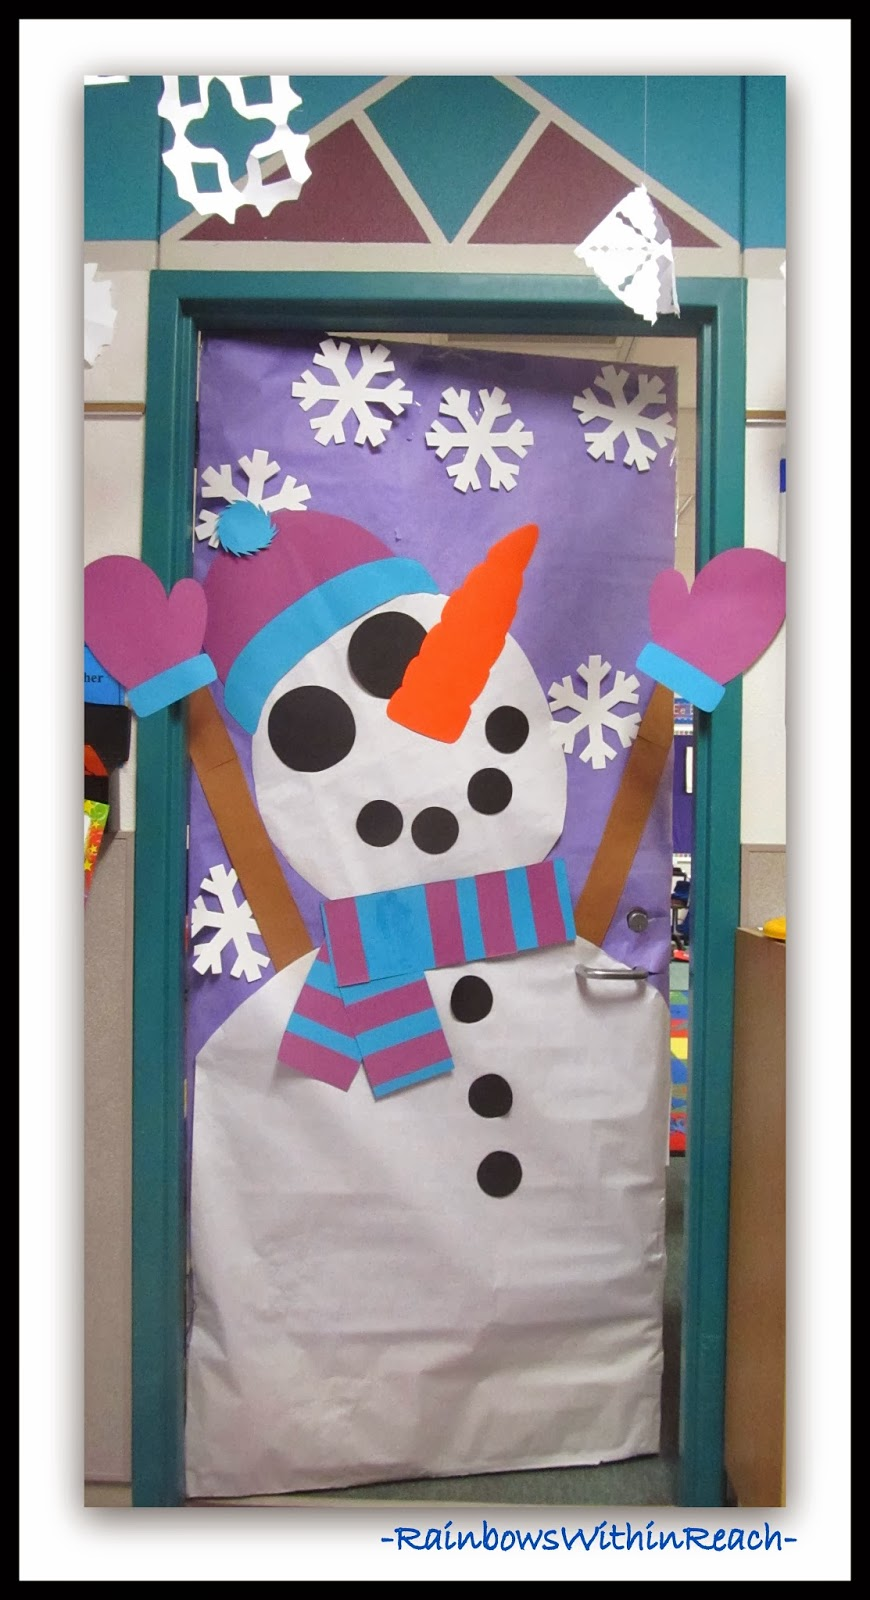 Snowman decorated classroom door via rainbowswithinreach Class door winter decorations